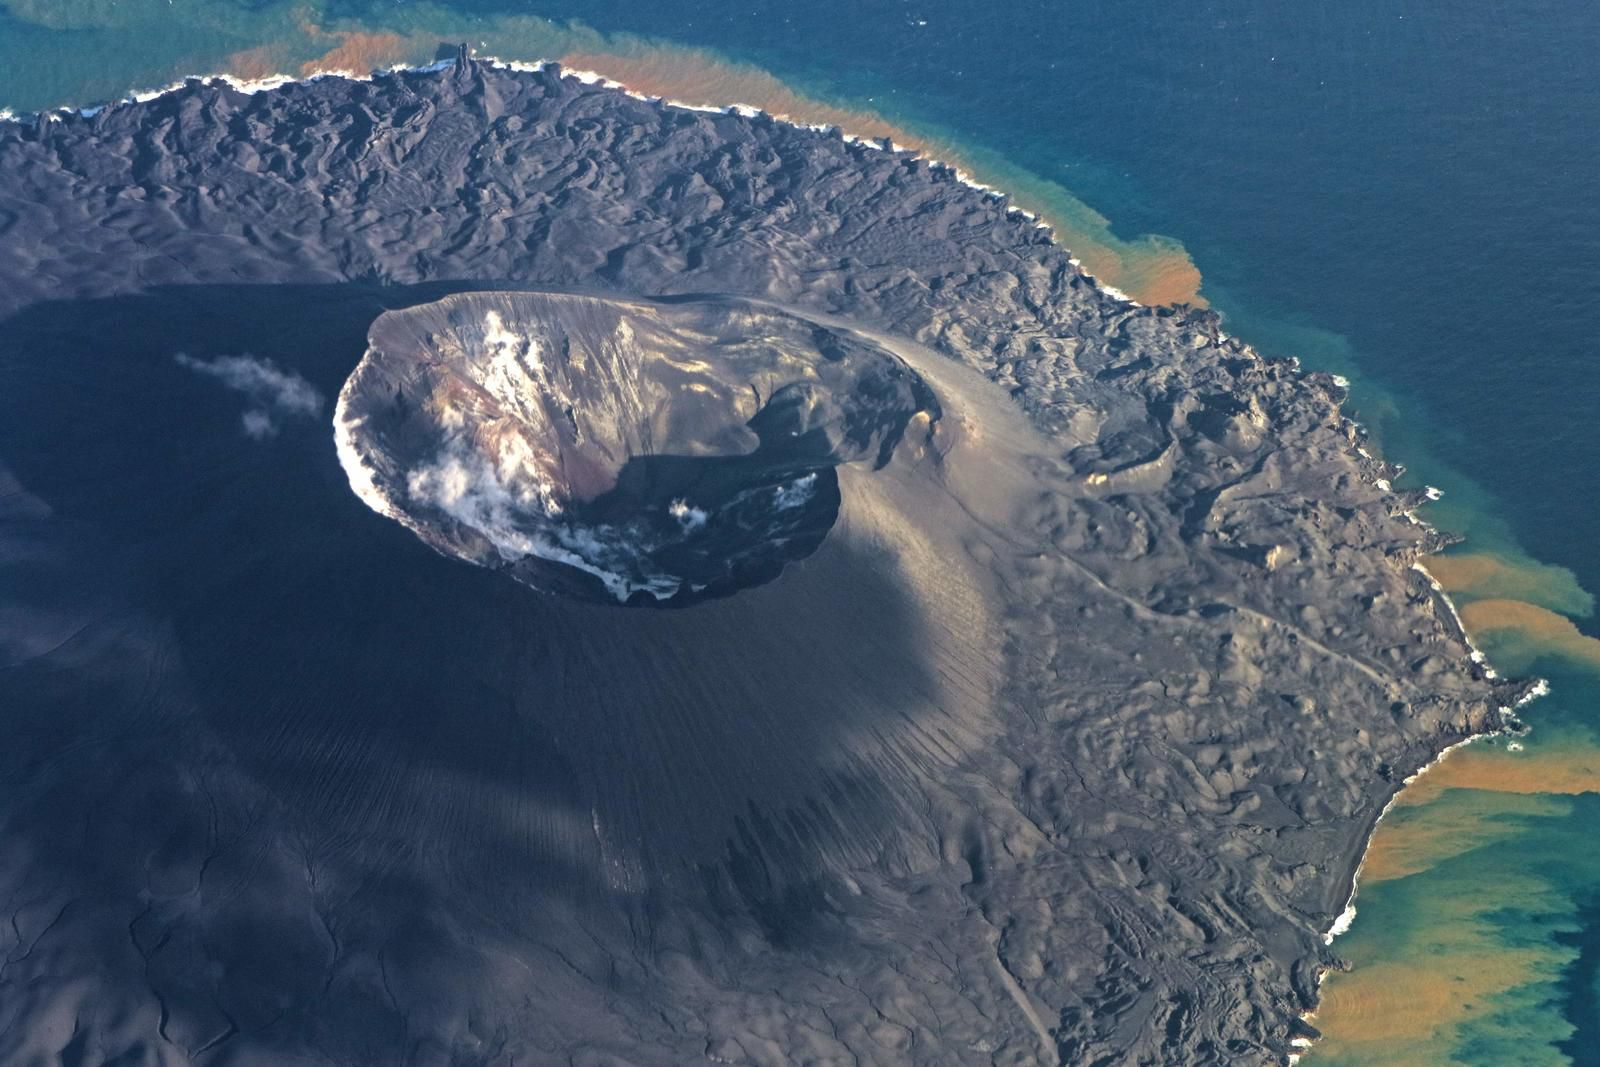 Nishinoshima - the crater active on 10/28/2020 / 3:17 p.m. - overflight by the Japan Coast Guards